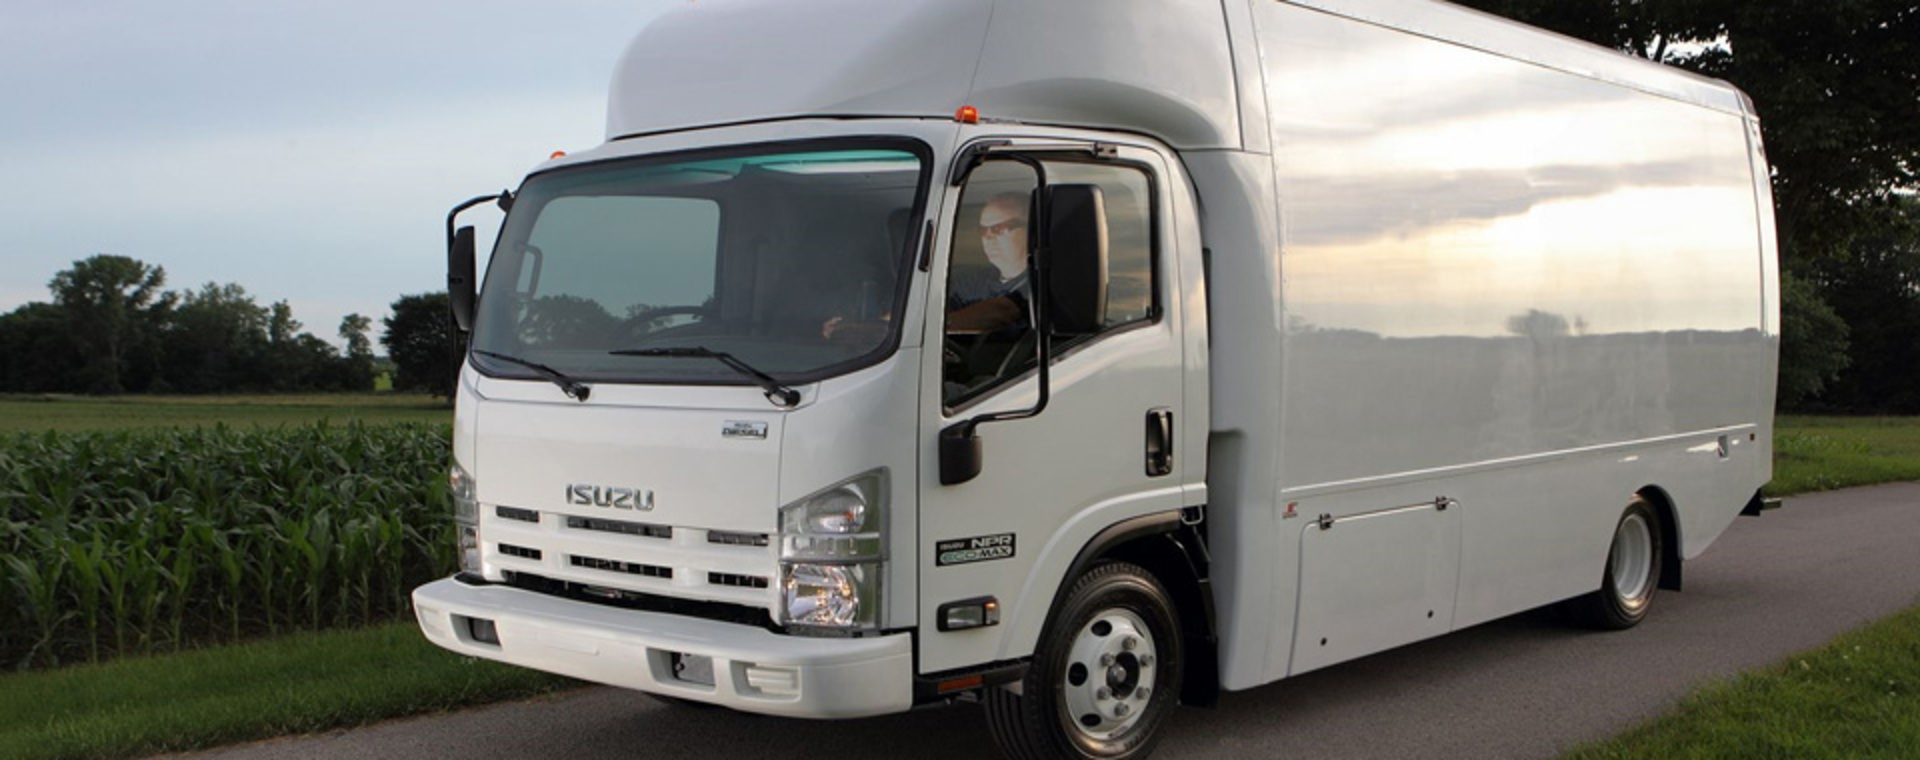 Isuzu n-series photo - 8